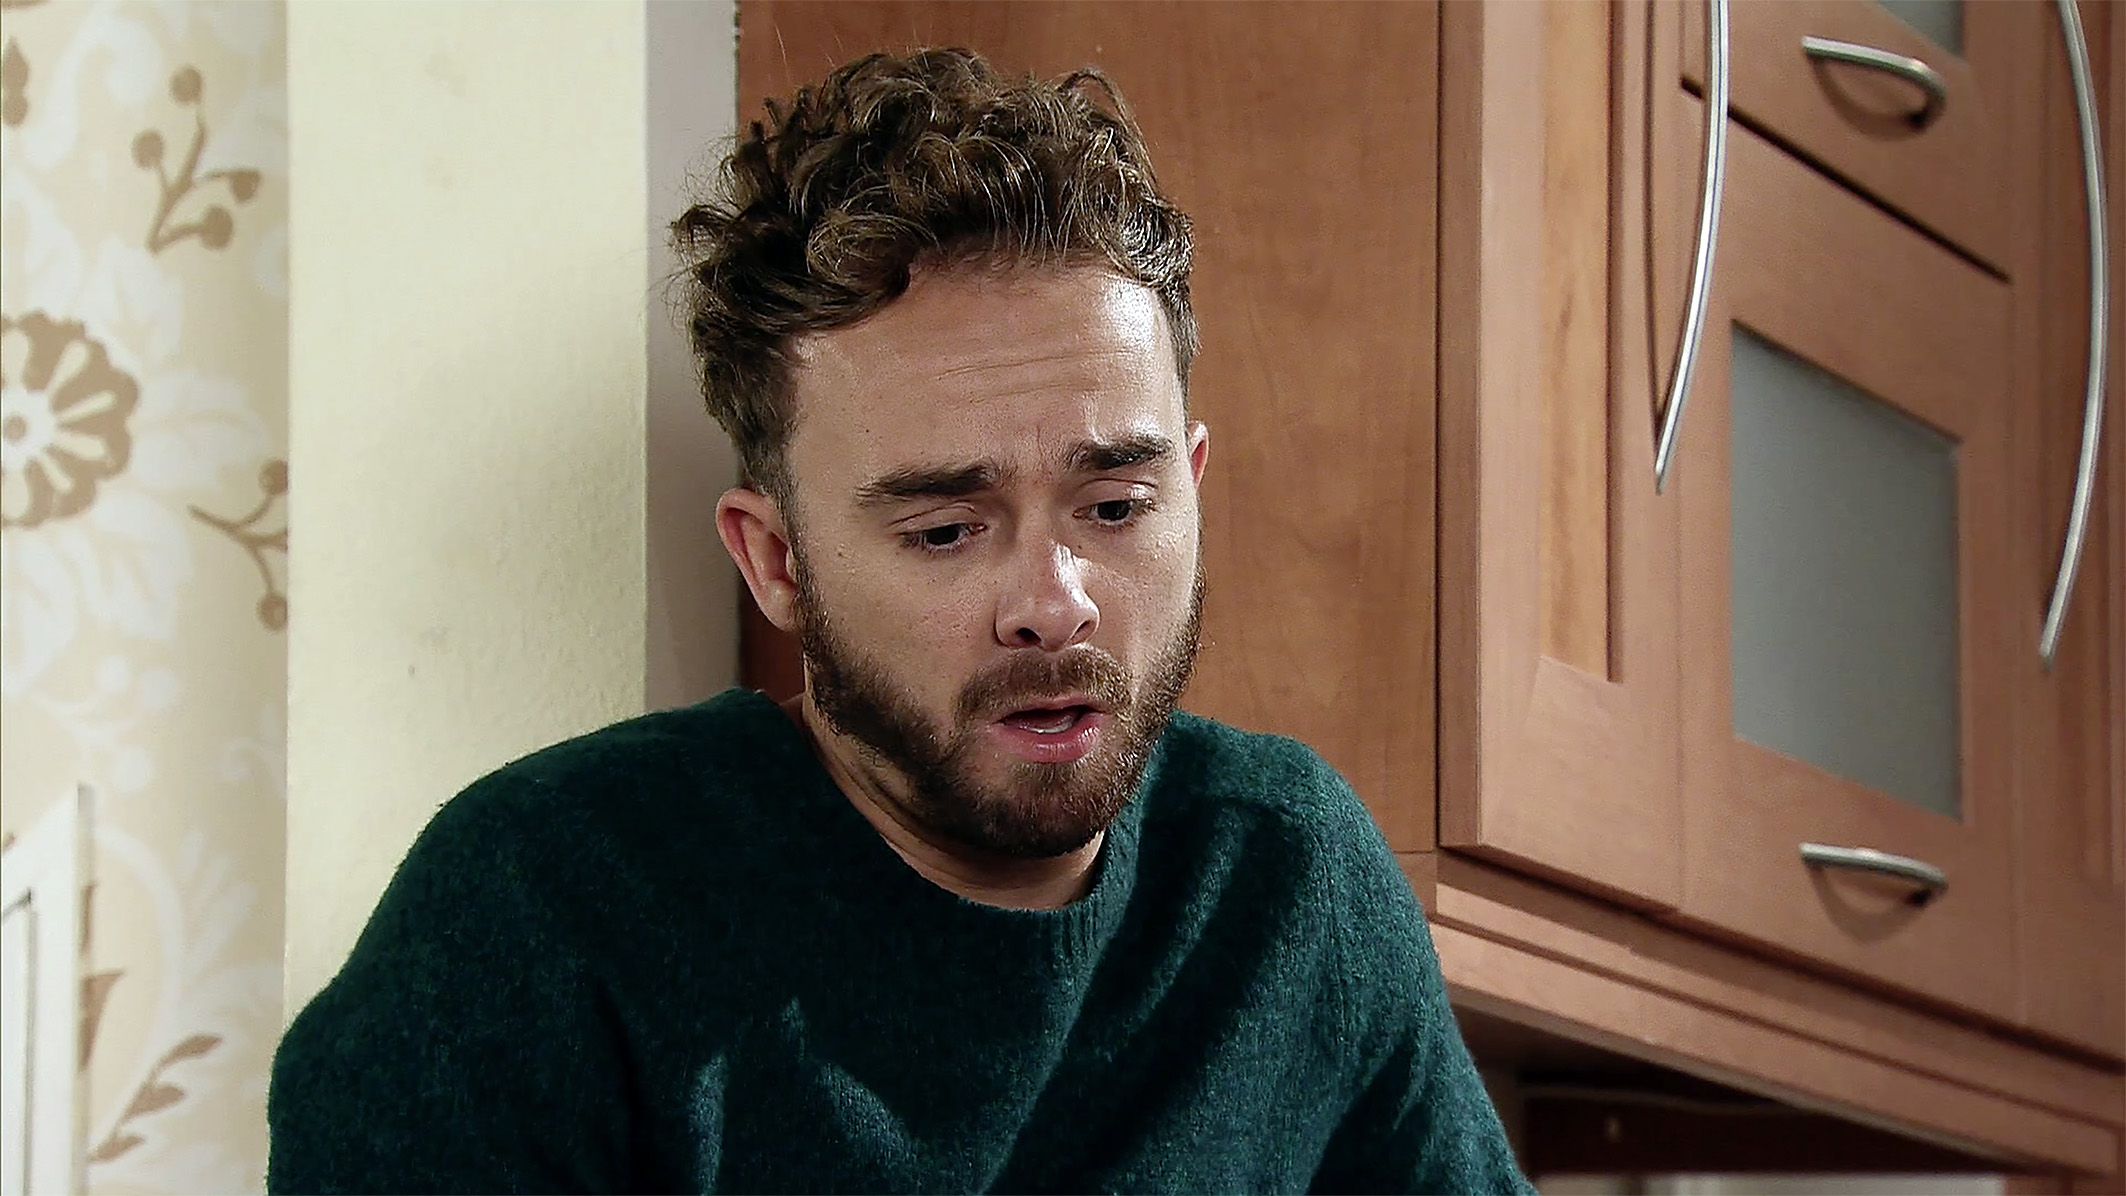 Coronation Street to feature its first male rape storyline